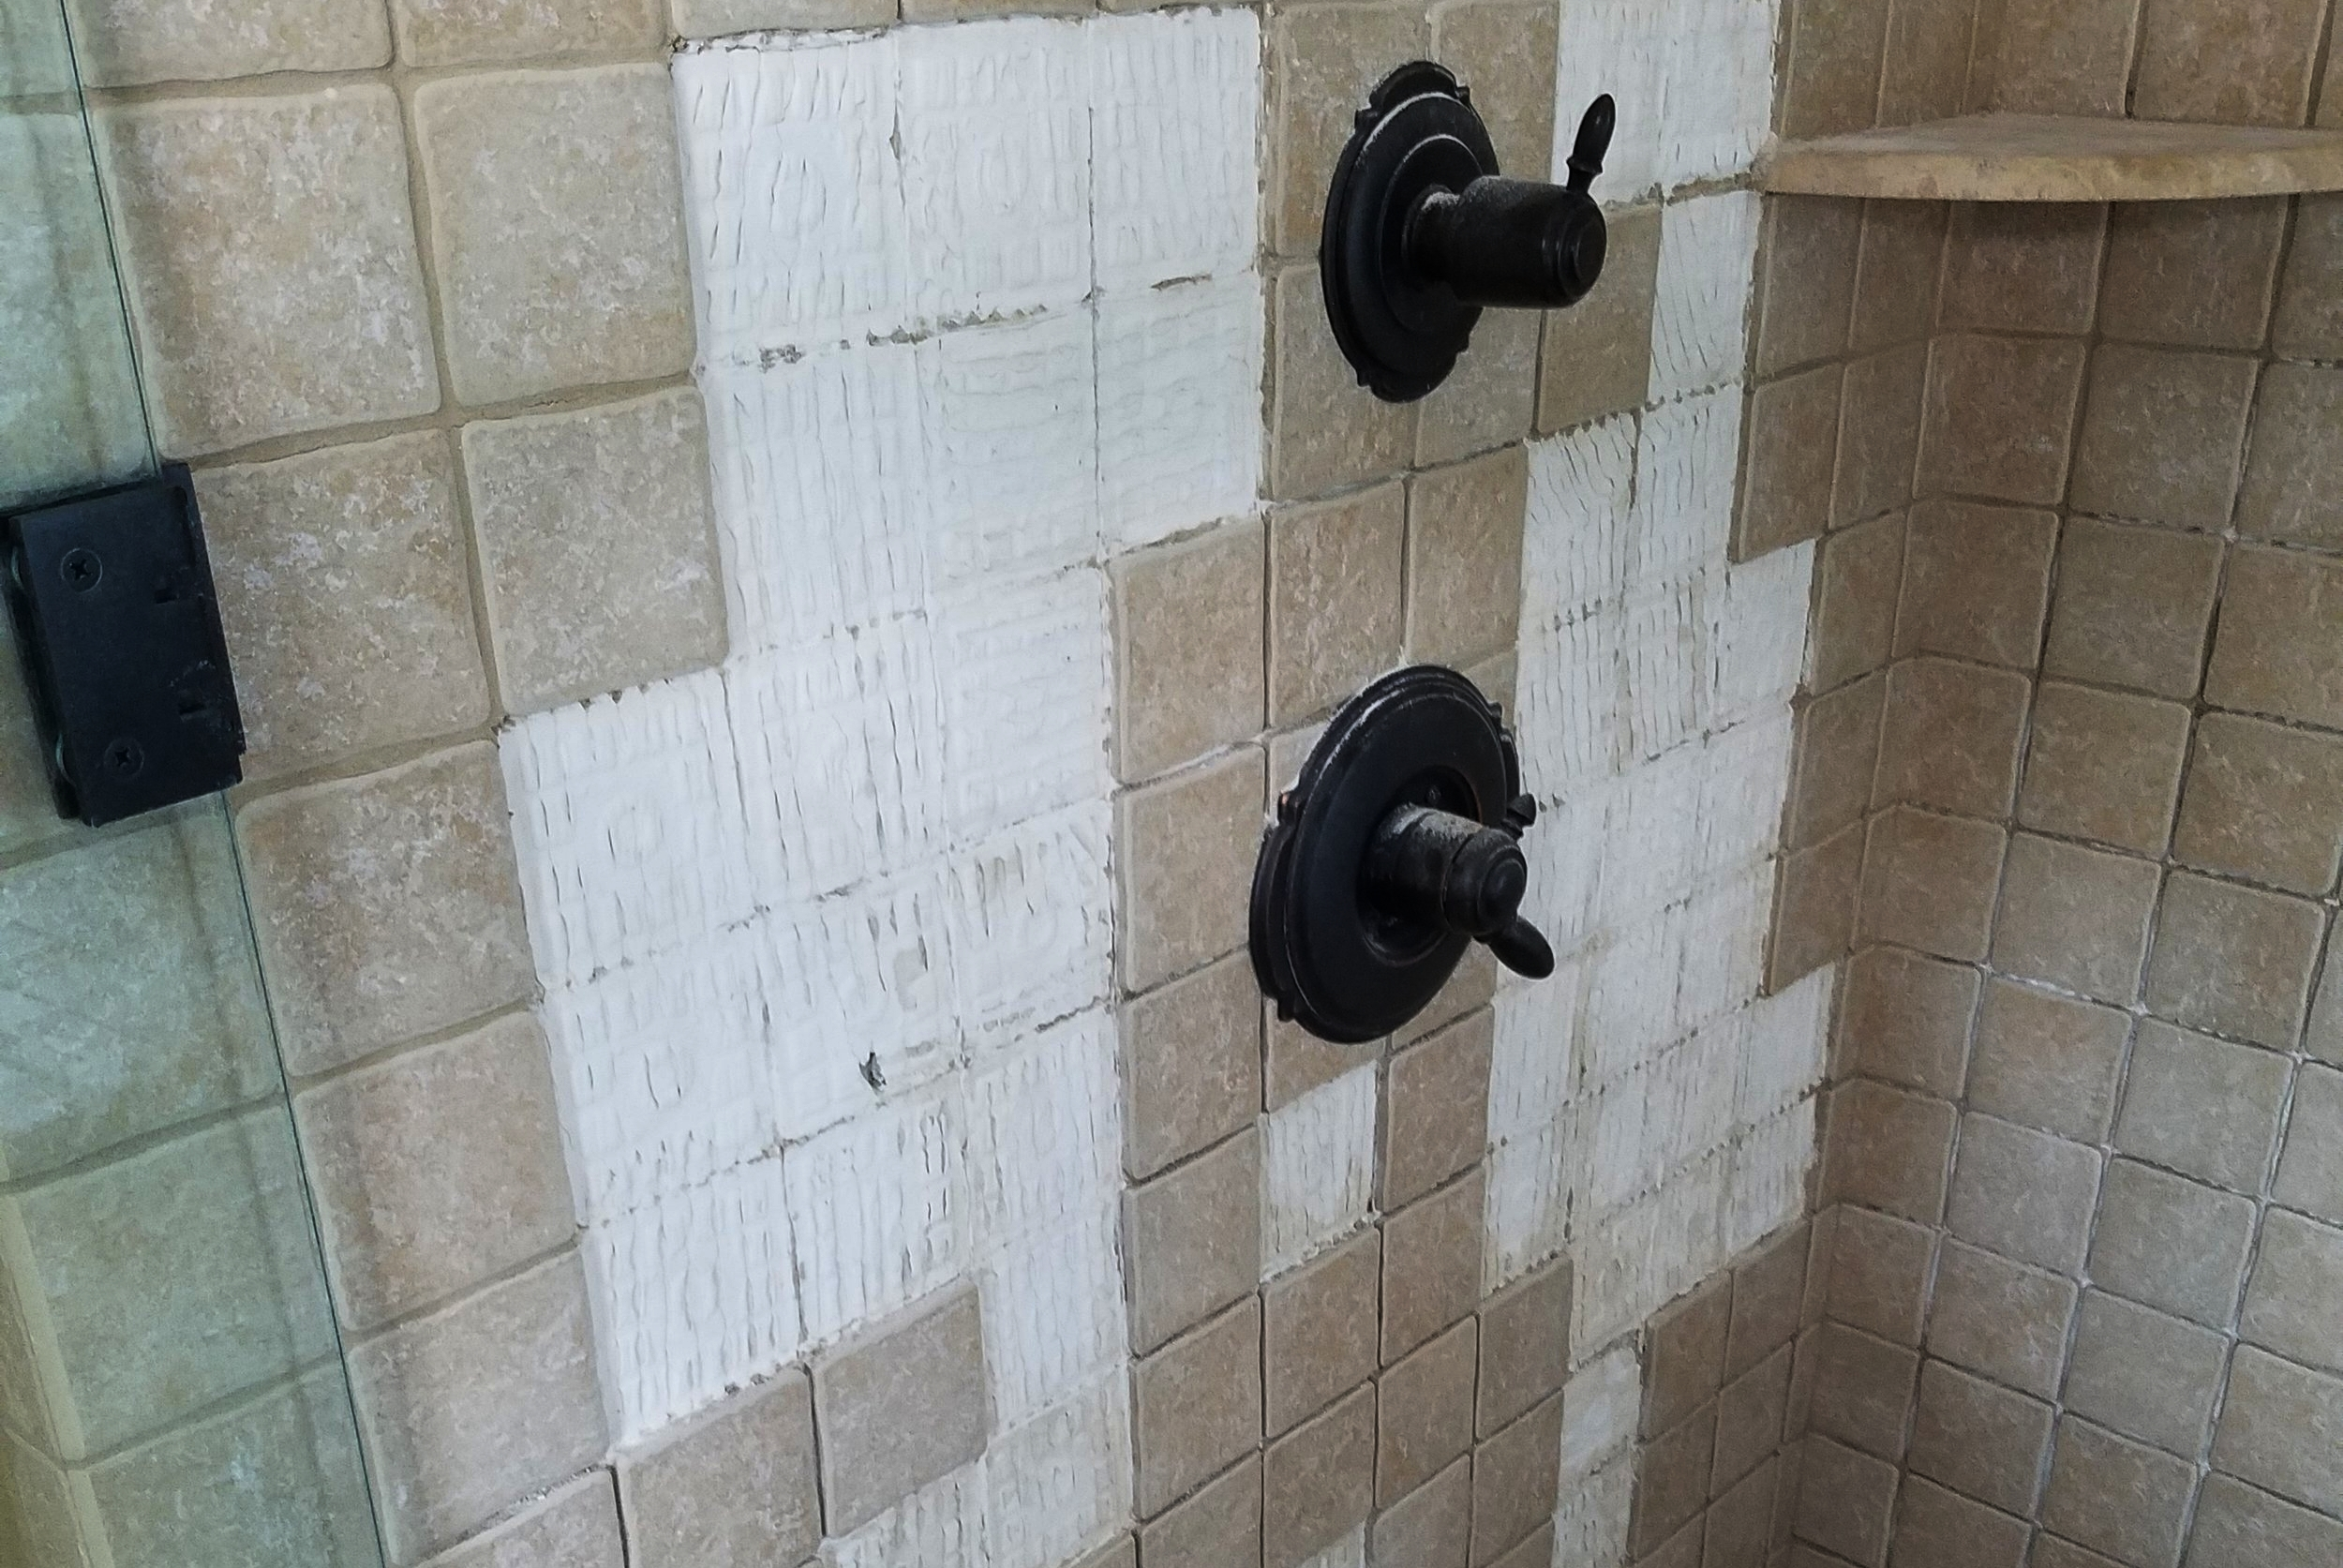 Tile Replacement - Tiles can become chipped or in some cases completely broken and destroyed. Our technicians are trained in the removal and replacement of these tiles. *Customer must have replacement tiles on hand*